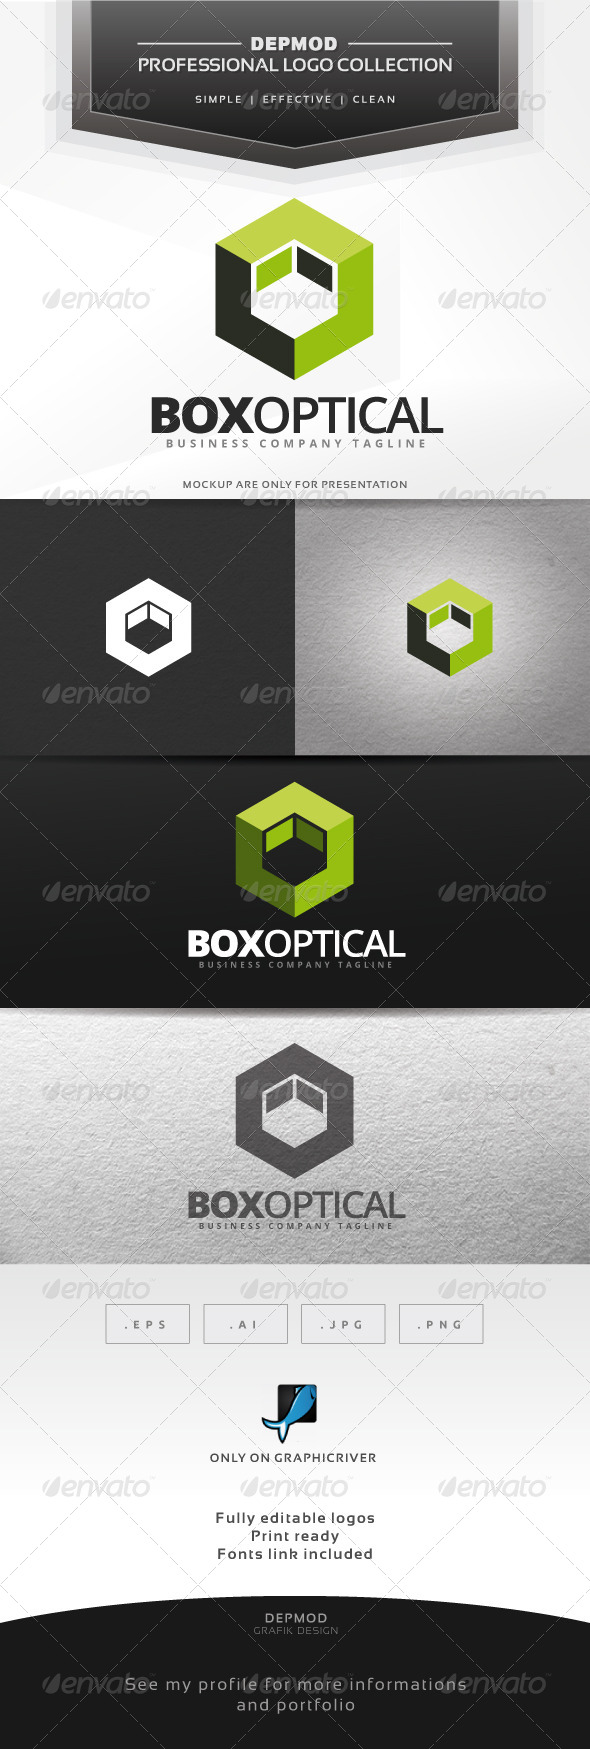 Box Optical Logo - Abstract Logo Templates